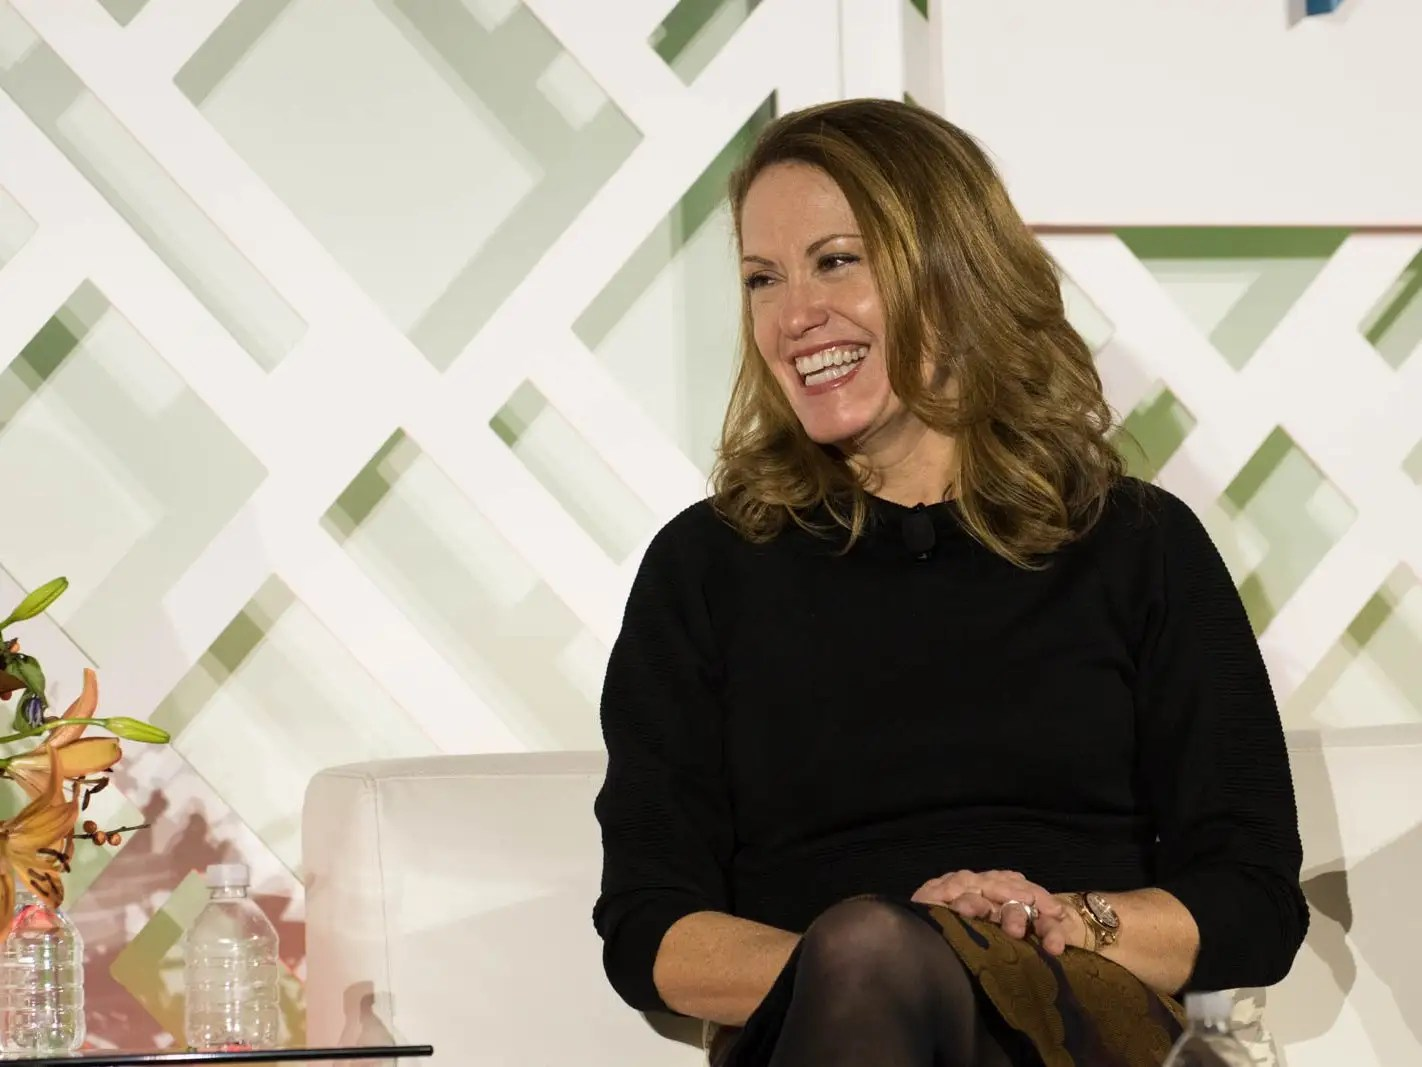 Senior Directors of Business Development can make $203,452 in base salary, or $339,014 in total compensation. It's their job to help lead partnerships, investments, outreach, and other ways of working with outside companies. Peggy Johnson (below) leads that function at Microsoft, although not all of these employees would report into her group.